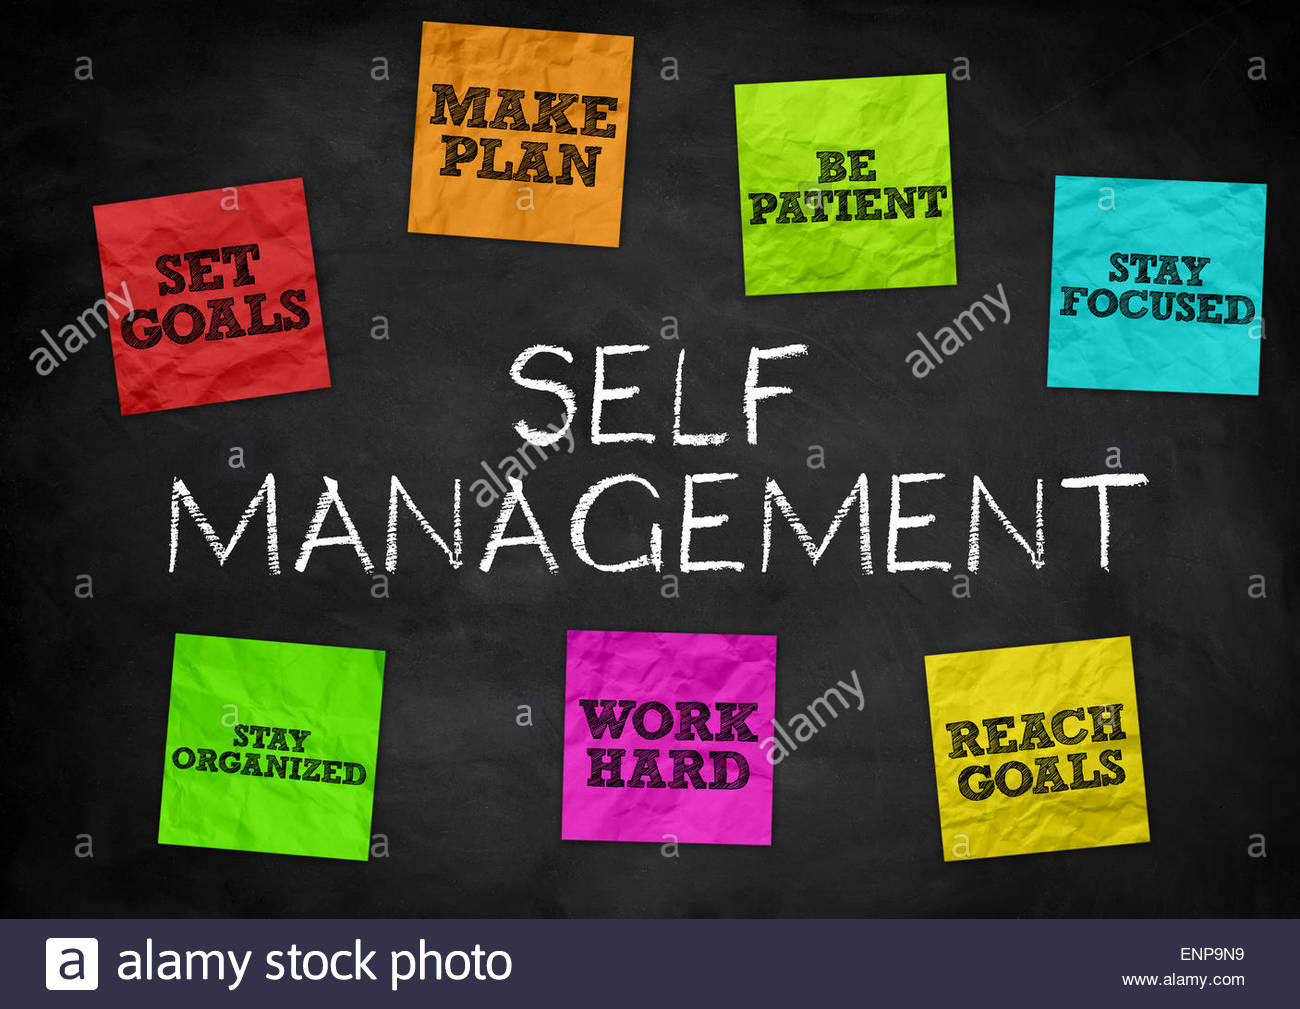 Self Management - Stock Image